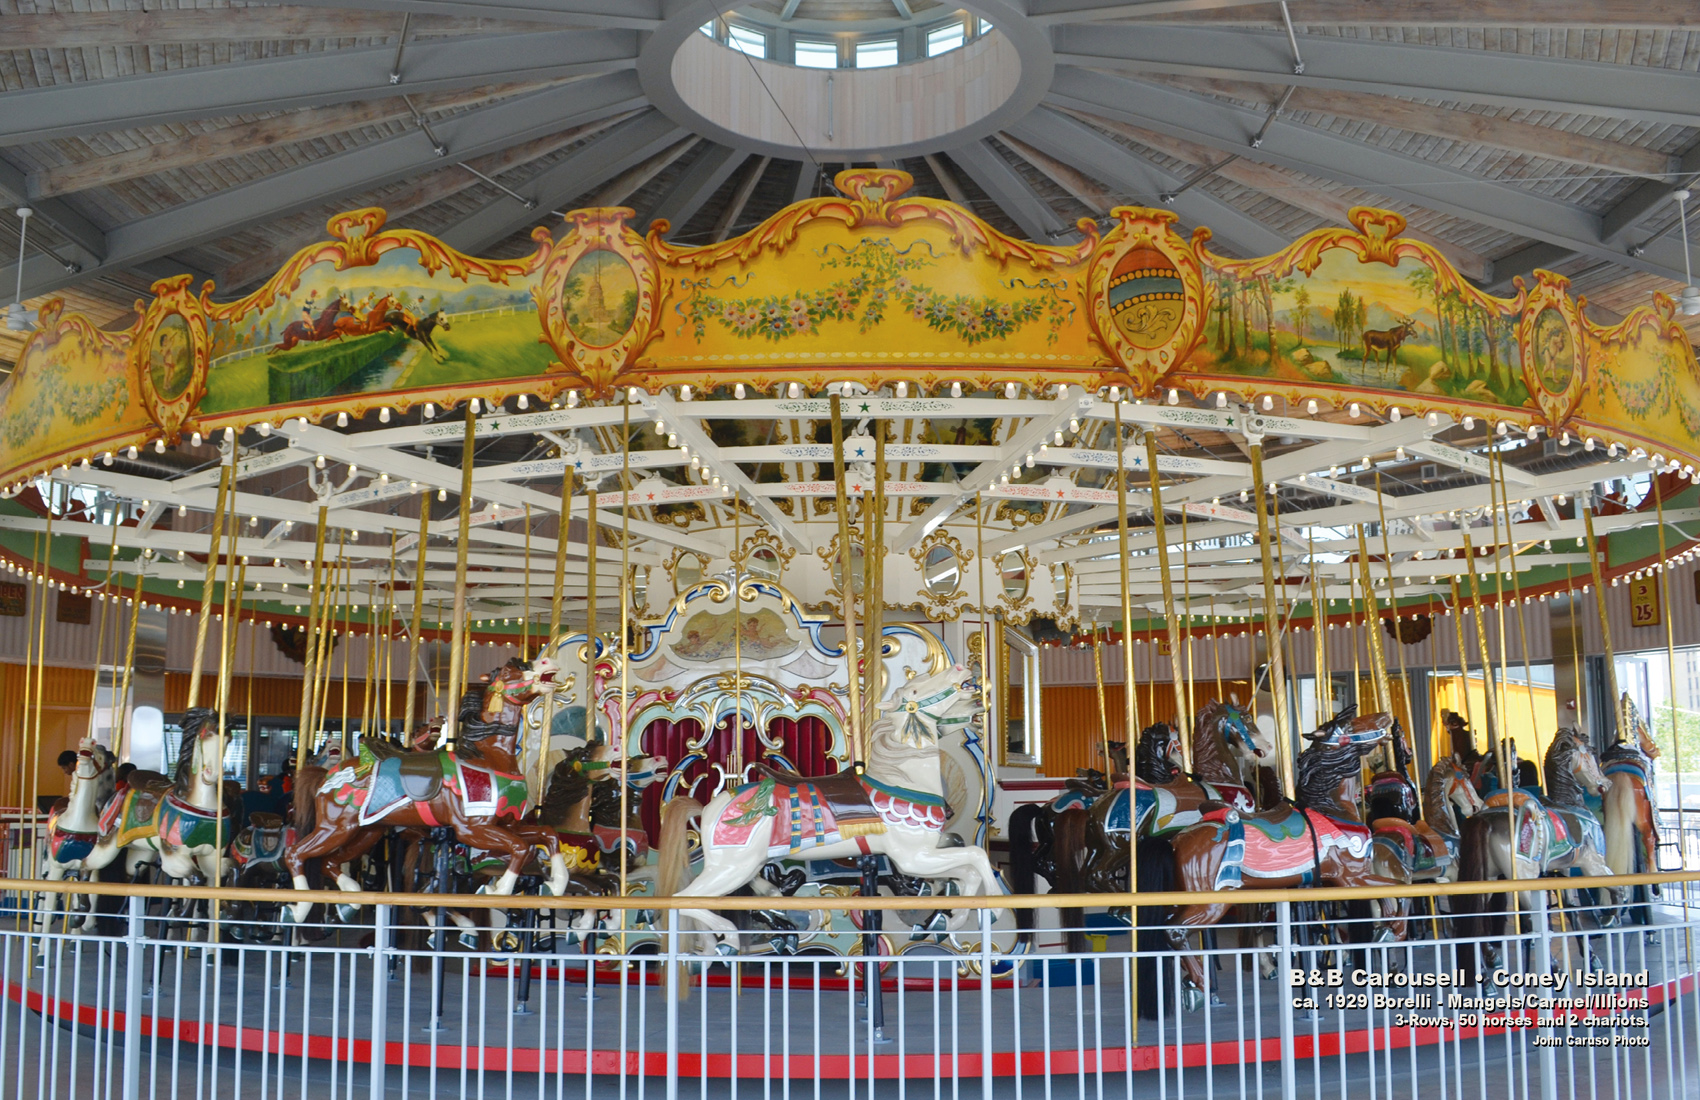 Historic-B-and-B-carousel-Coney-Island-CNT-center-Sept-13